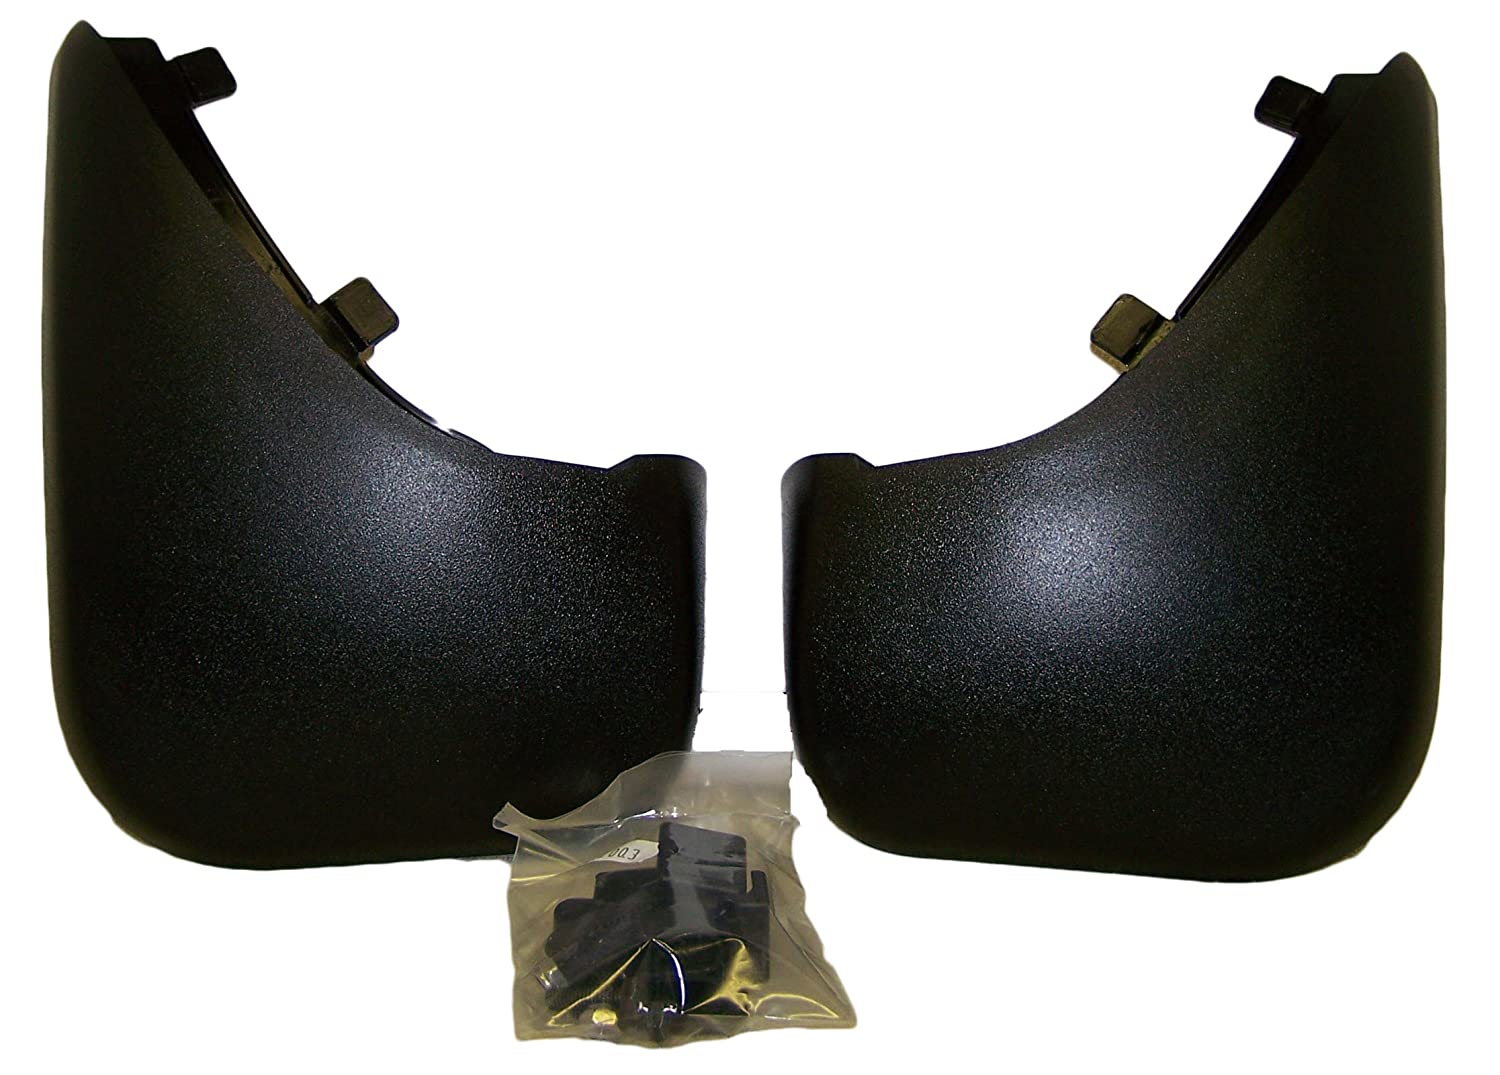 Ford Fusion Rear Mudflap Set from 2002 Onwards Ford Motor Company 1572963